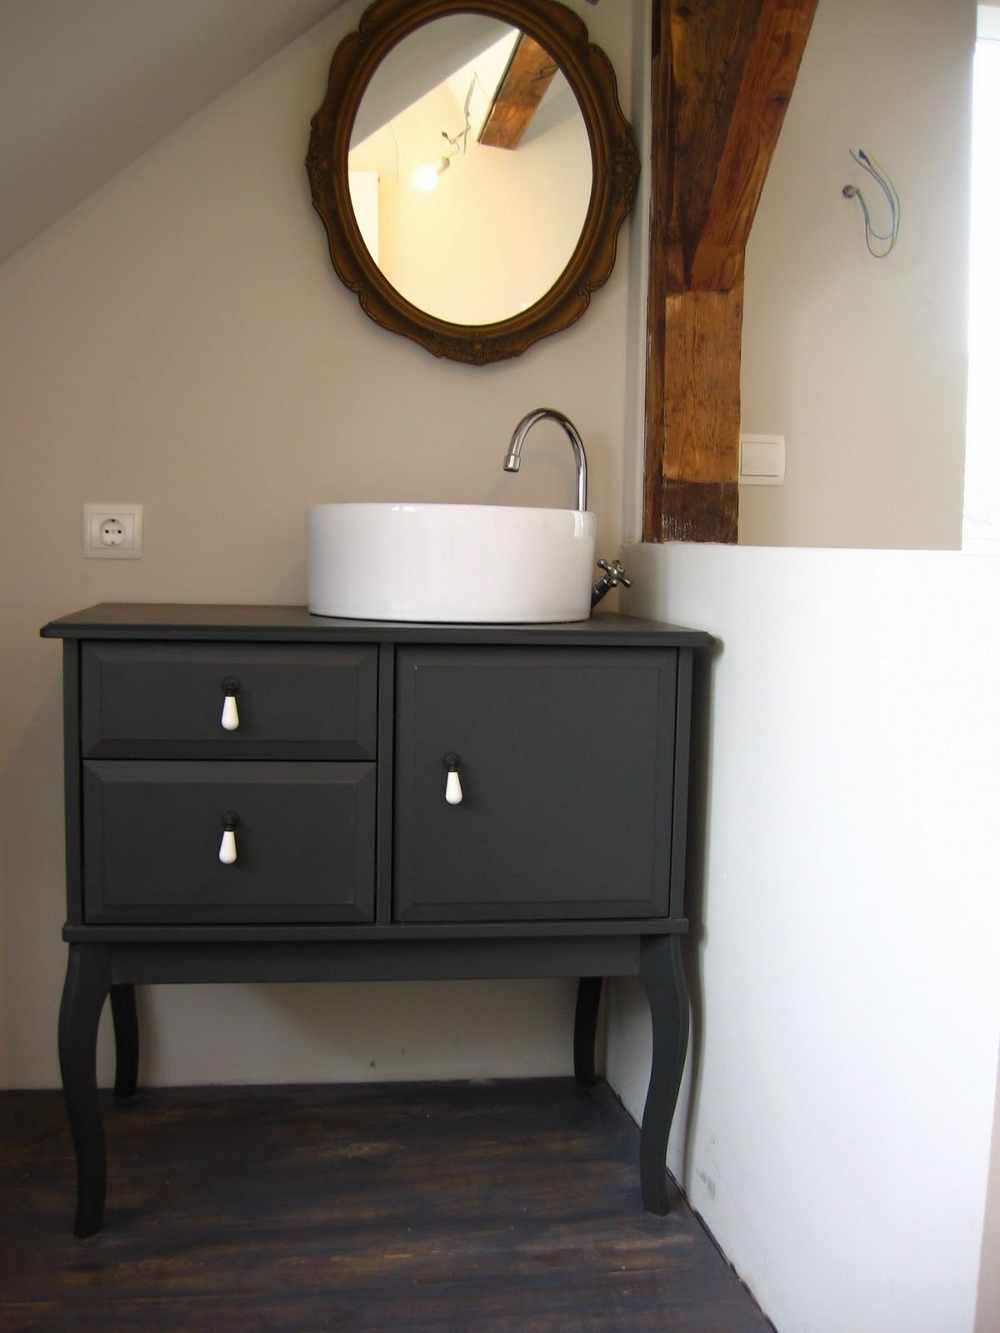 Practical Bathroom Vanity Cabinet (Image 9 of 10)